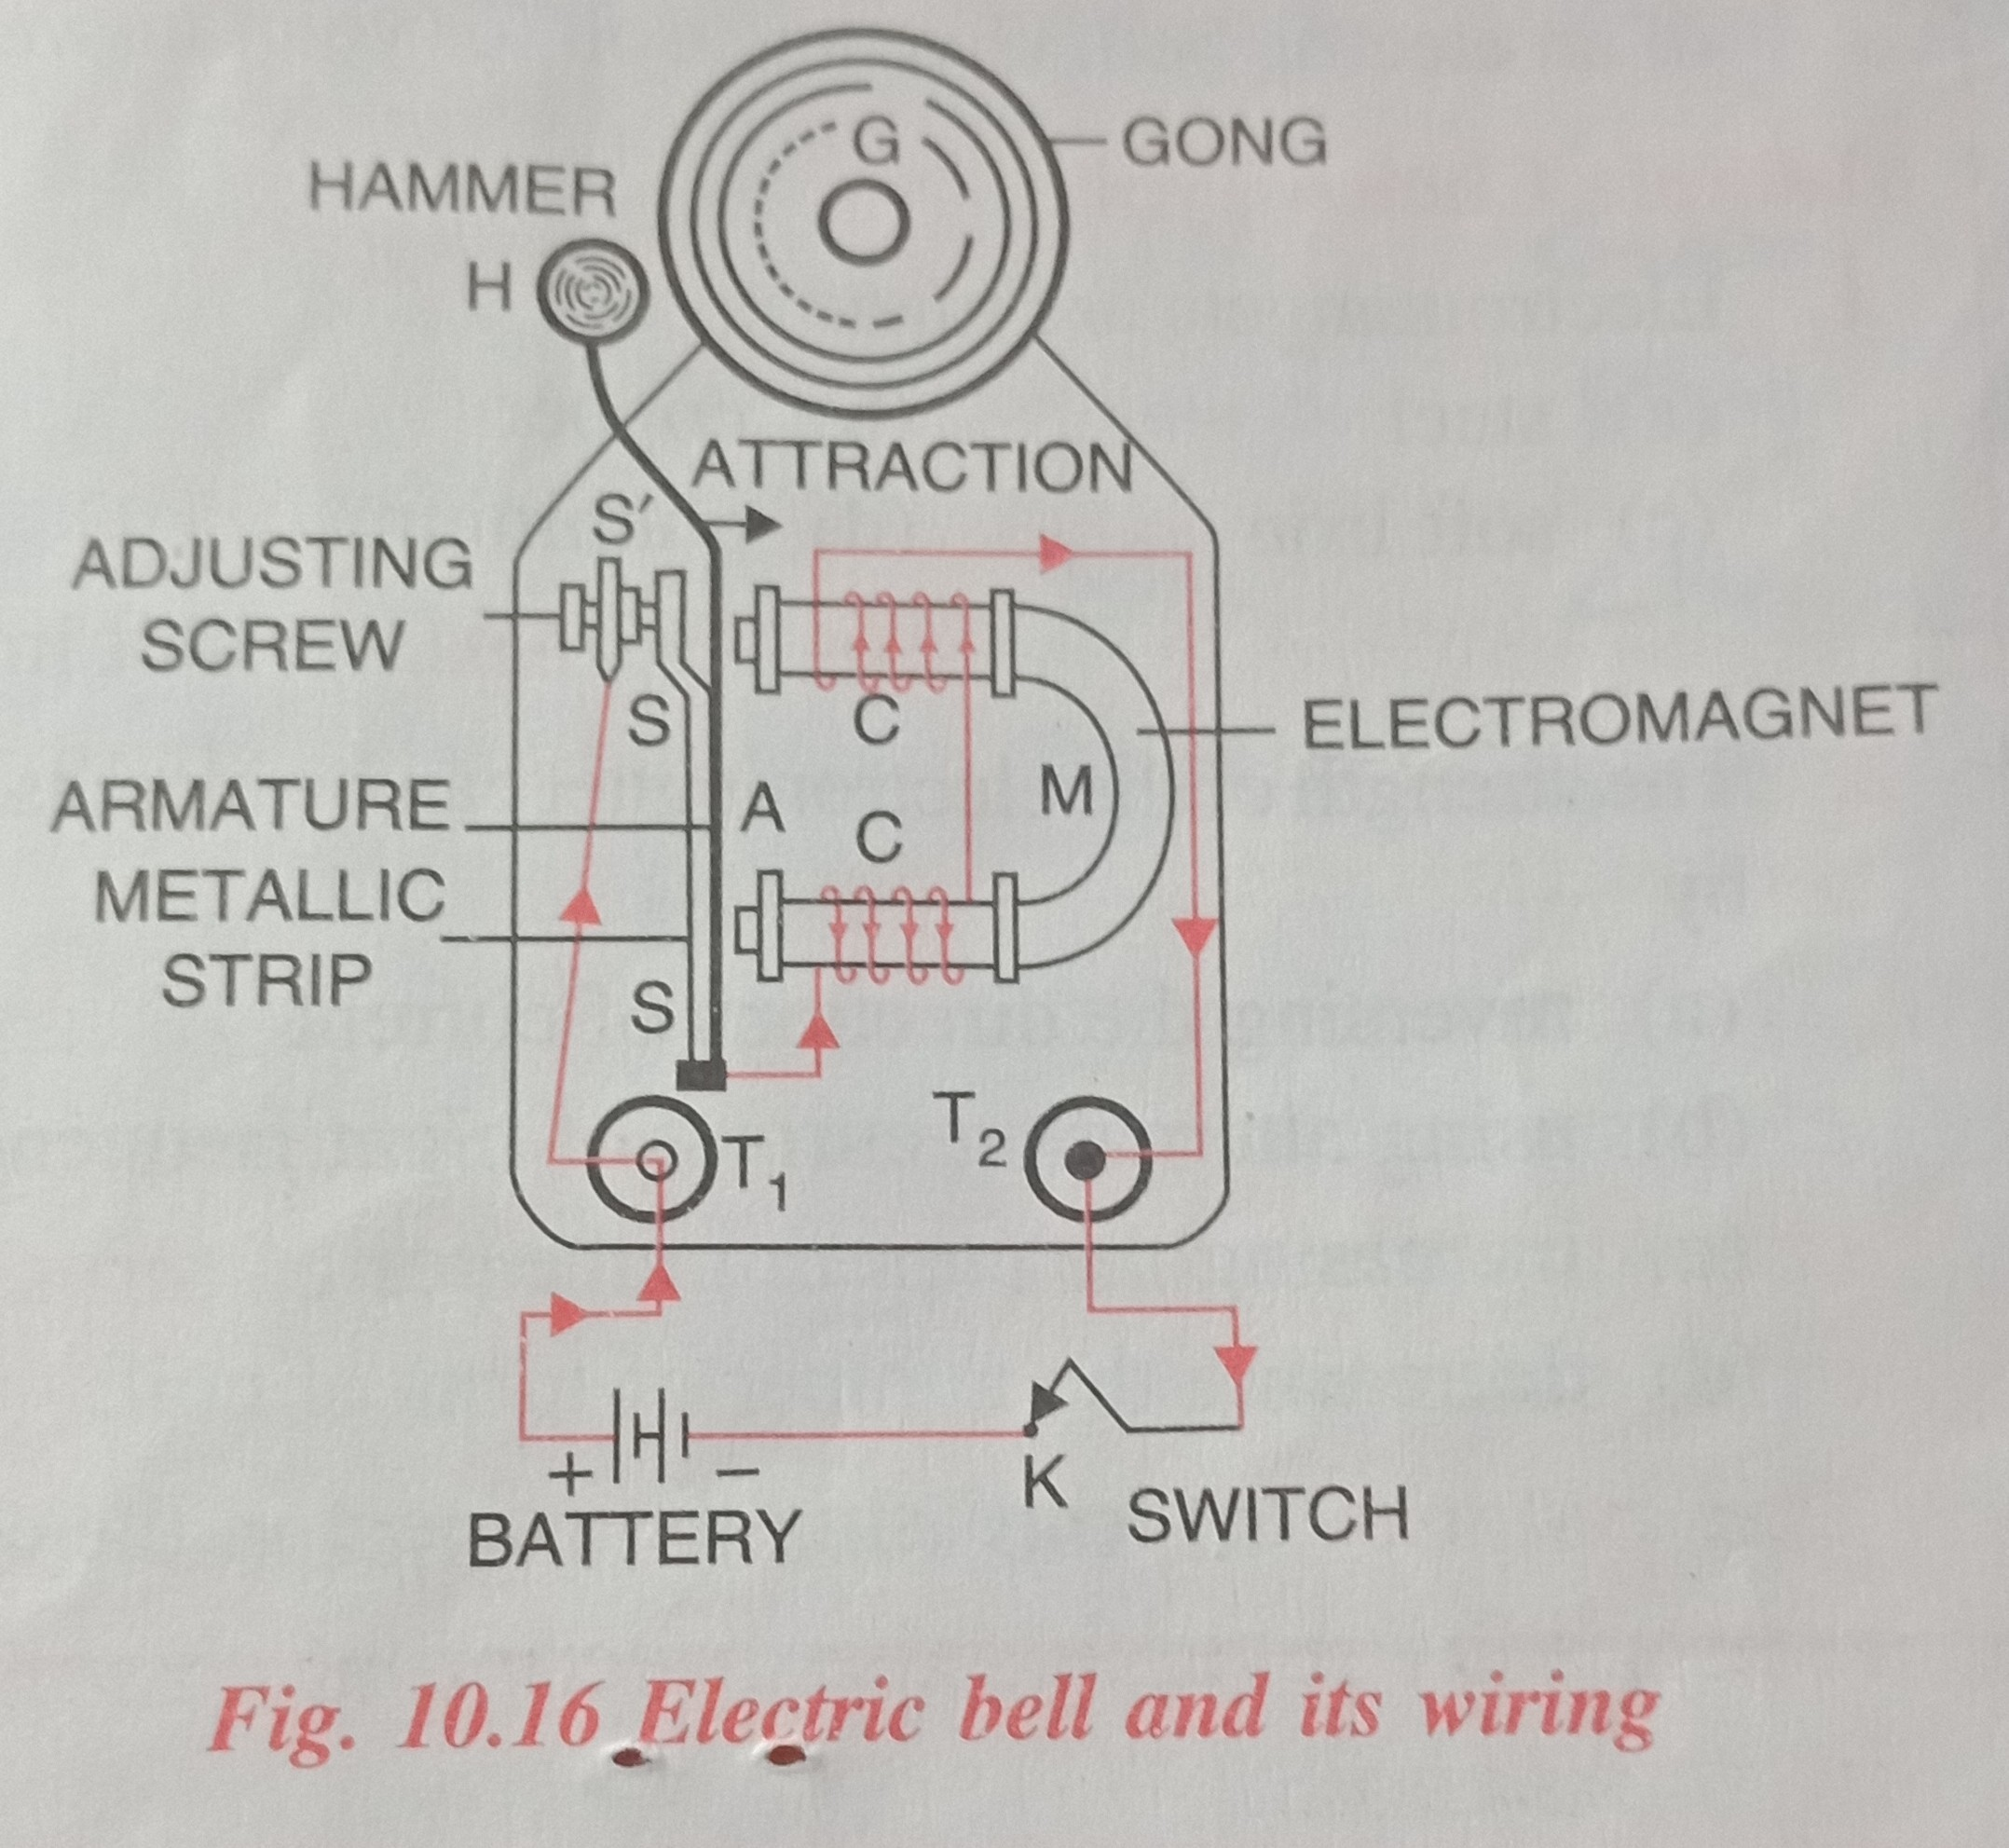 Explain The Shown Diagramclearly Electric Bell Circuit Diagram Explanation Clearly